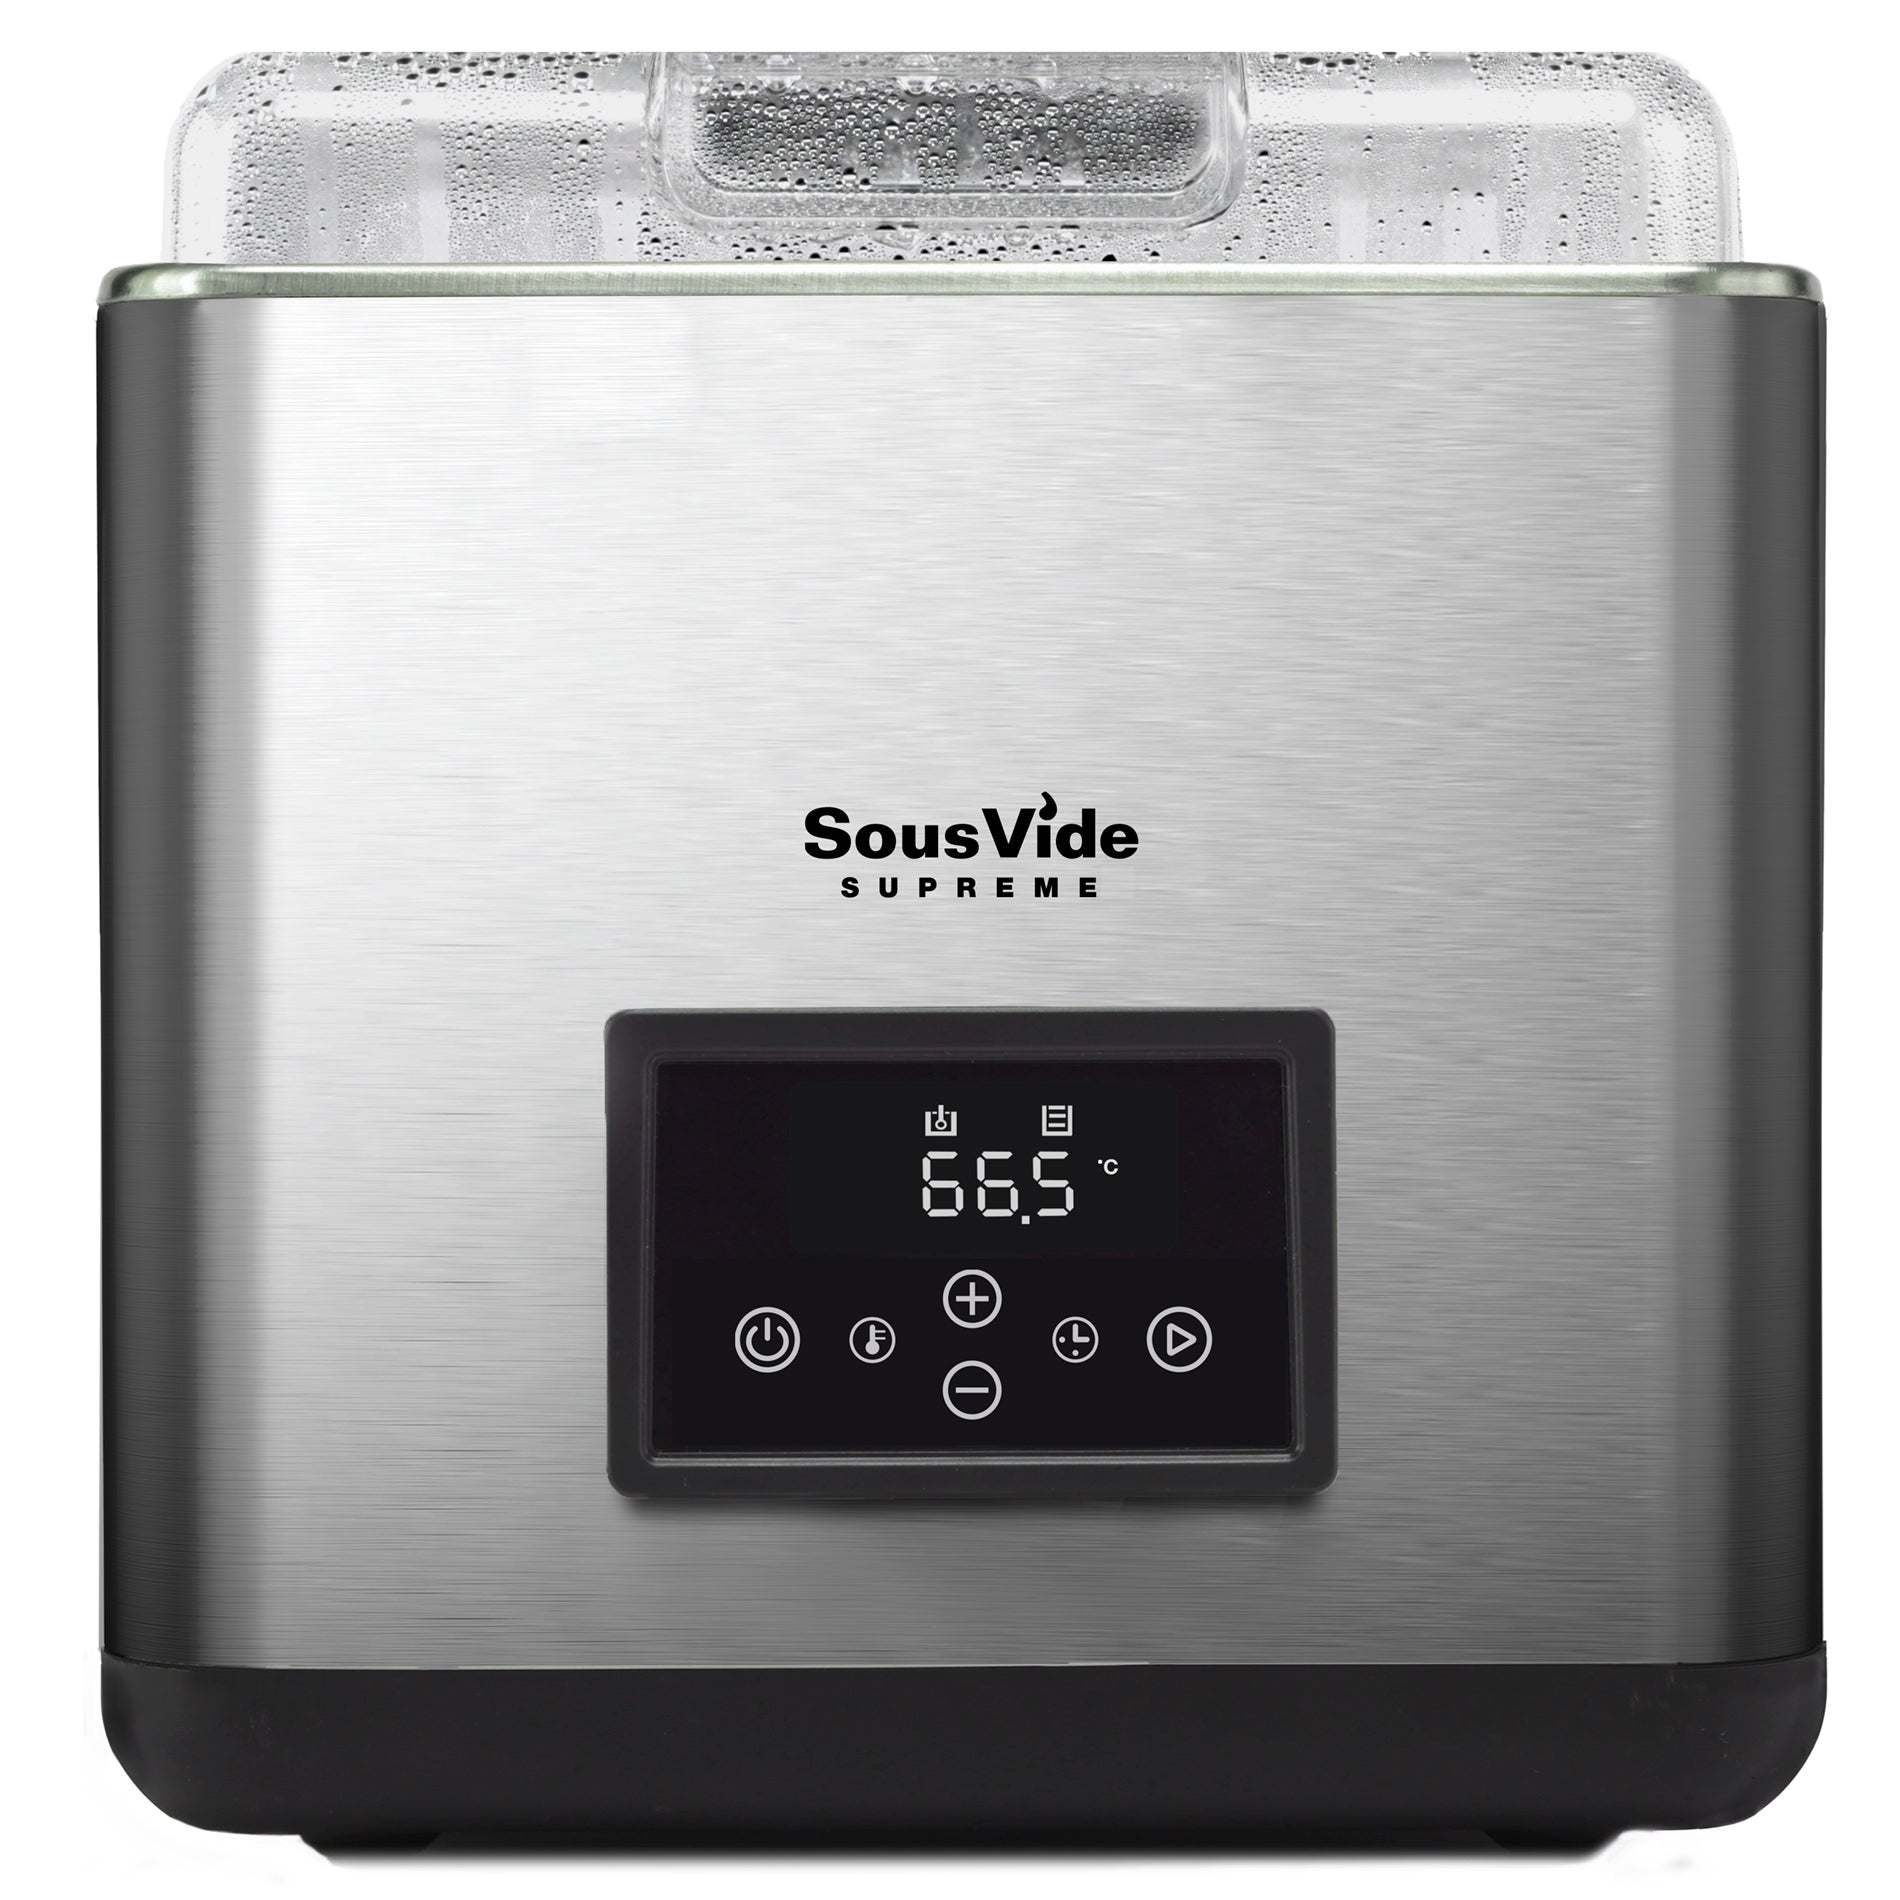 SousVide Supreme Touch Water Oven front view